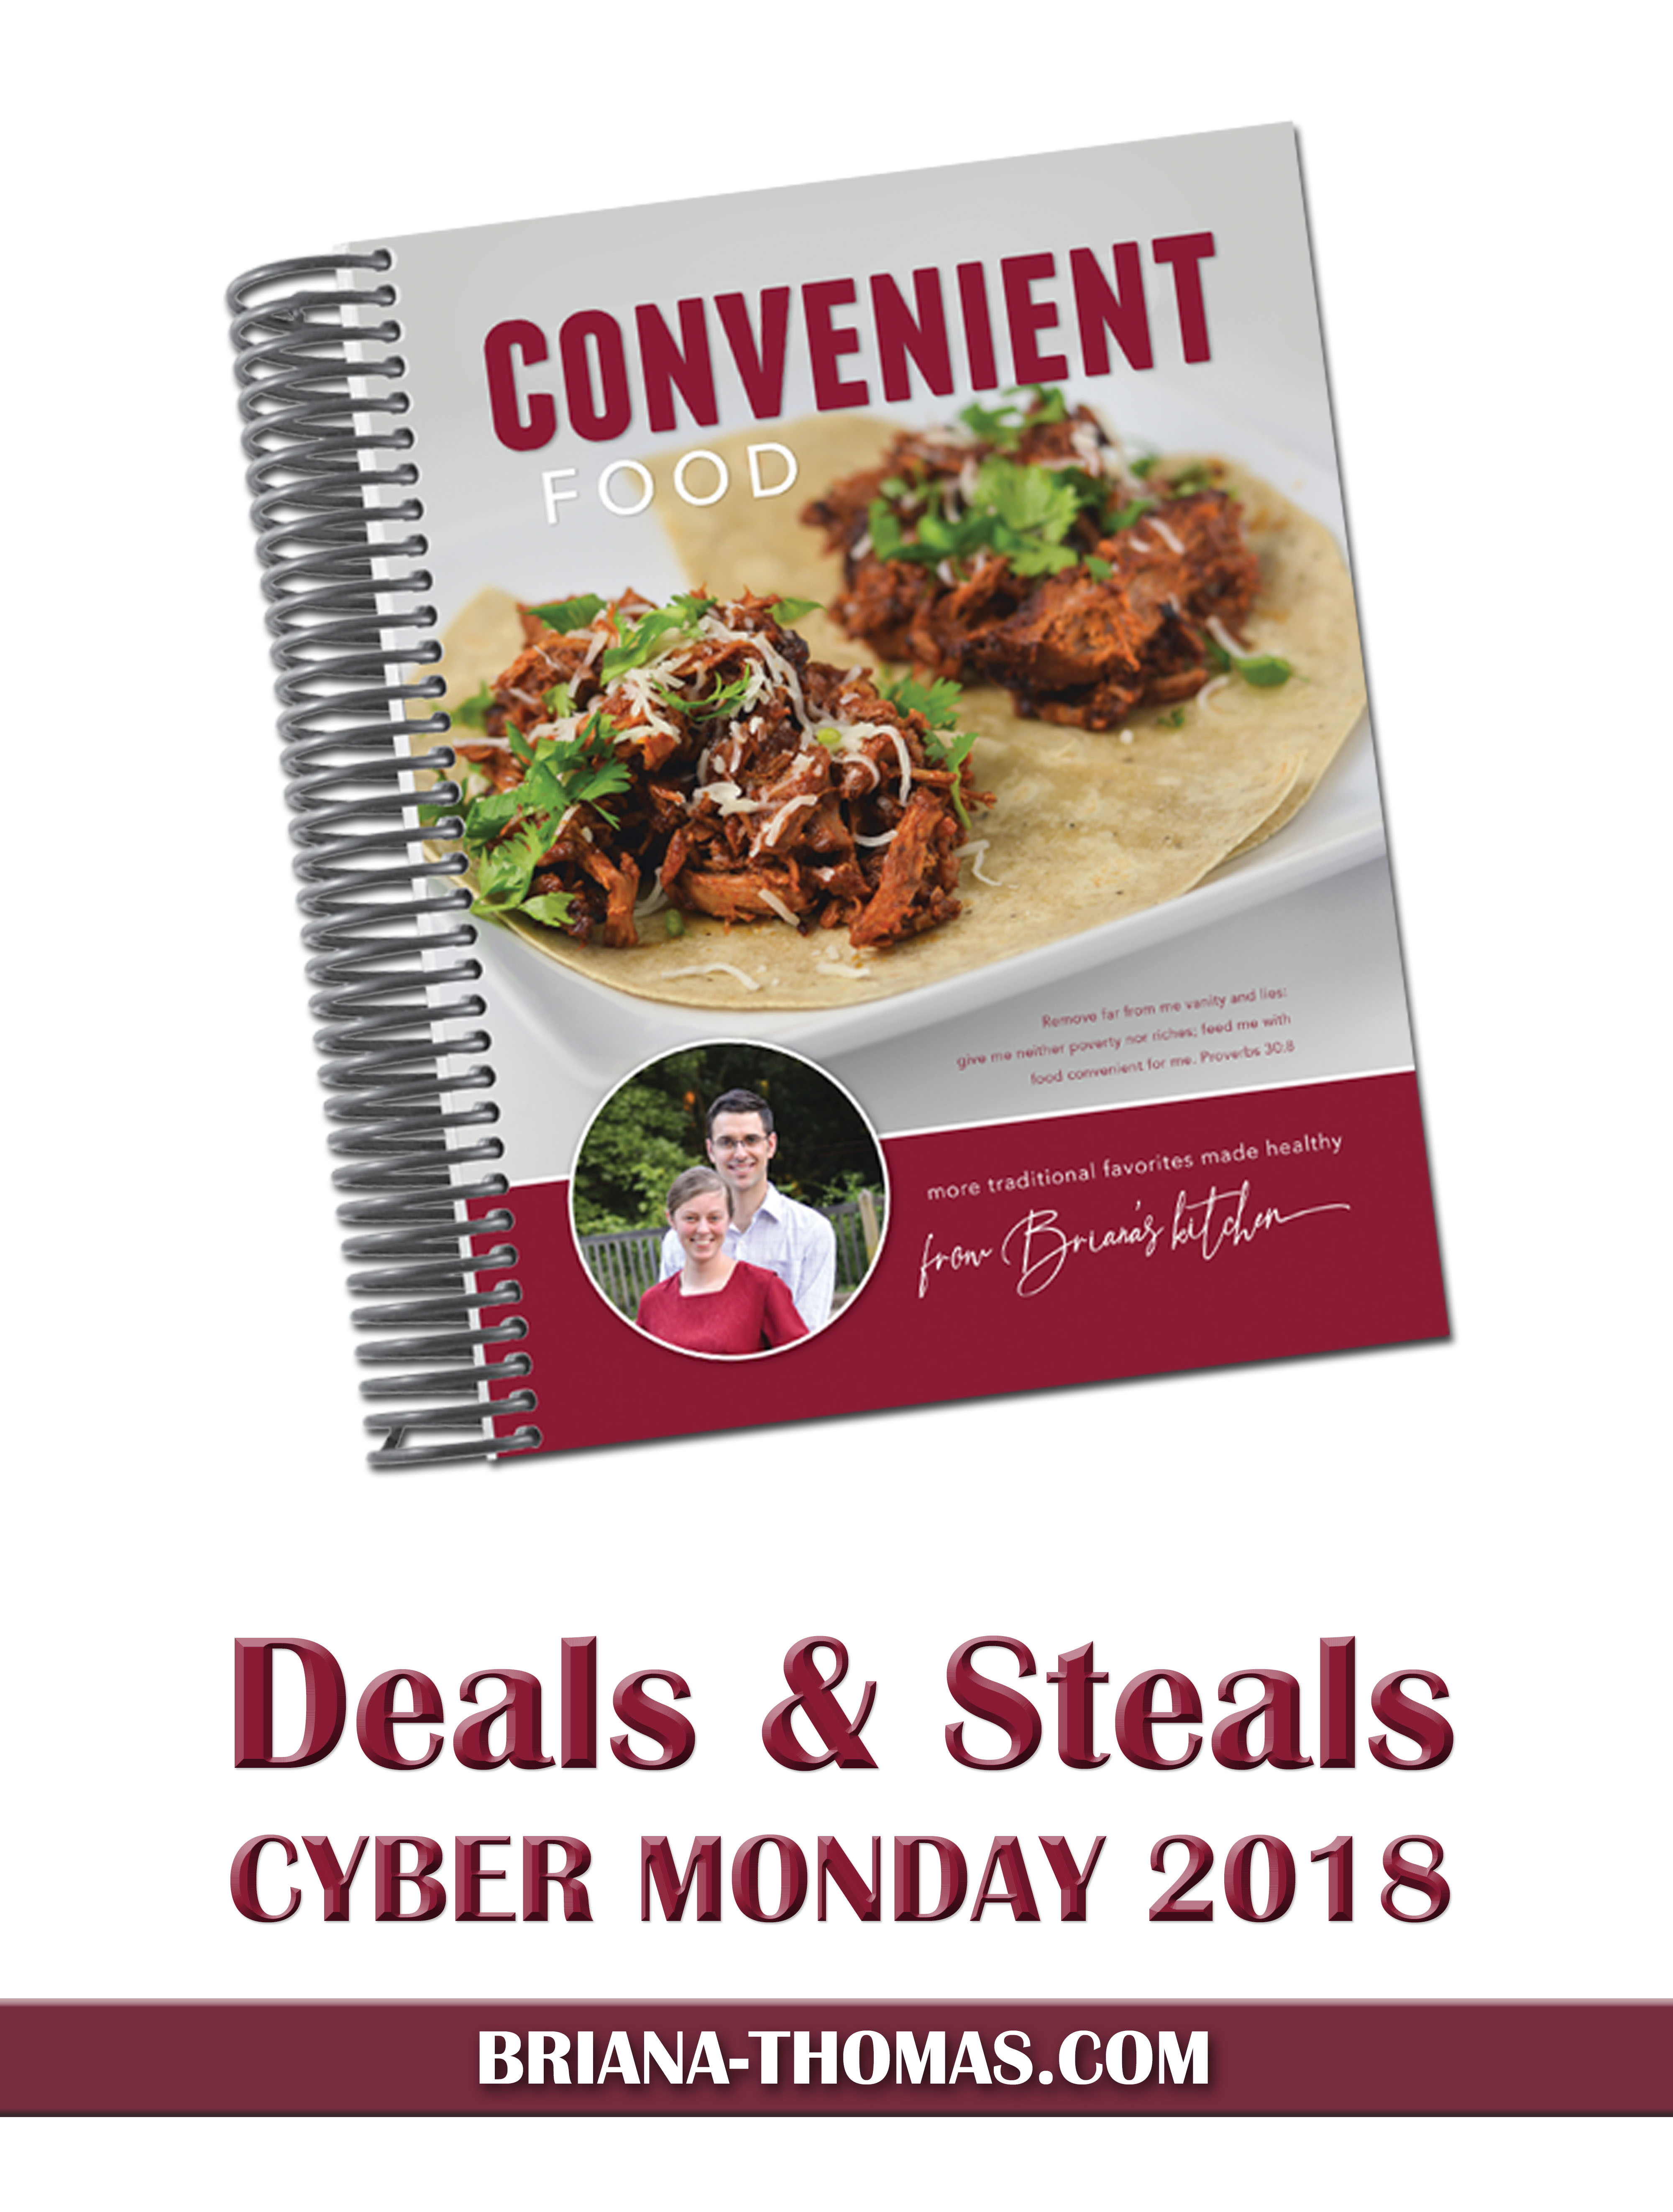 Check out this post for the best deals and steals for Cyber Monday 2018! Trim Healthy Mama sale, Briana Thomas cookbook sale, a giveaway, and more!